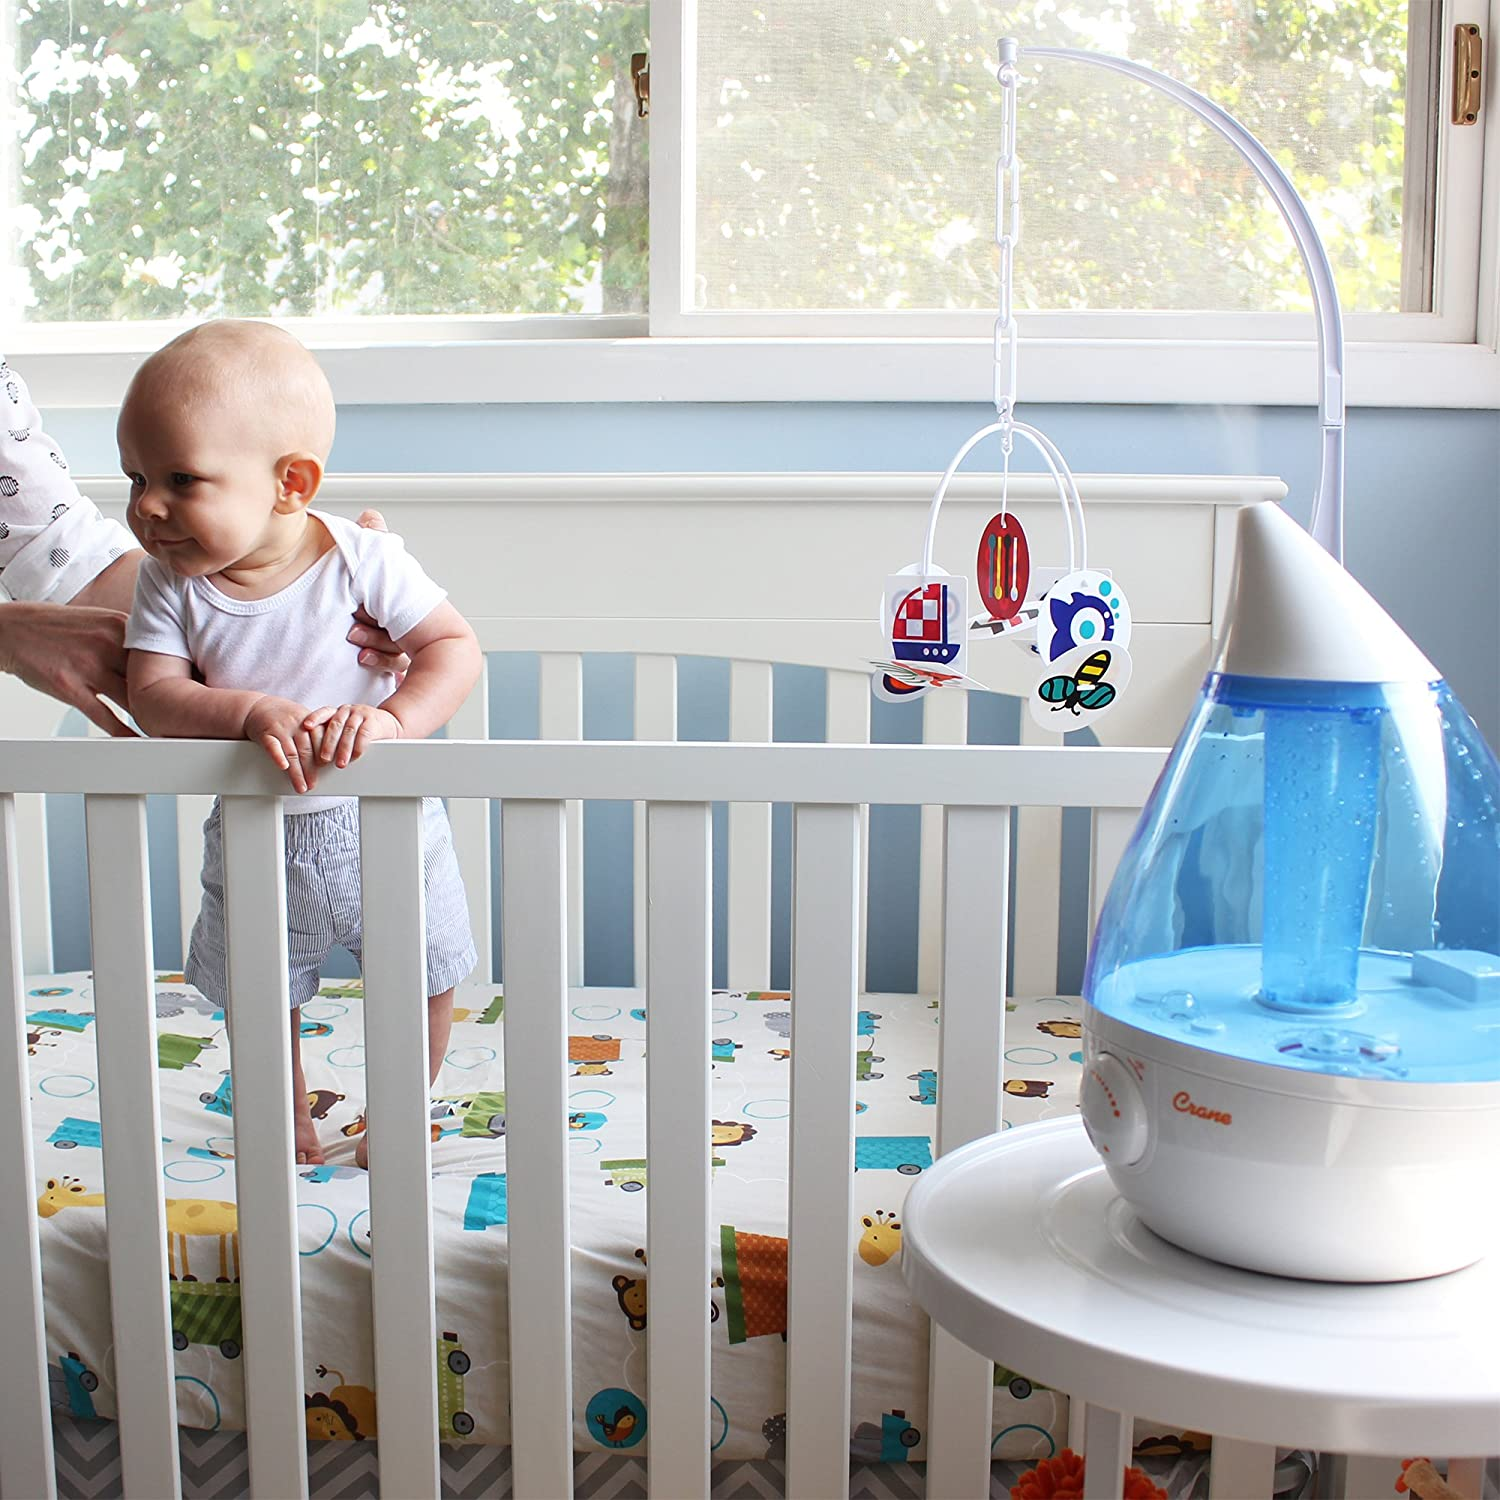 Best Humidifiers for Your Baby